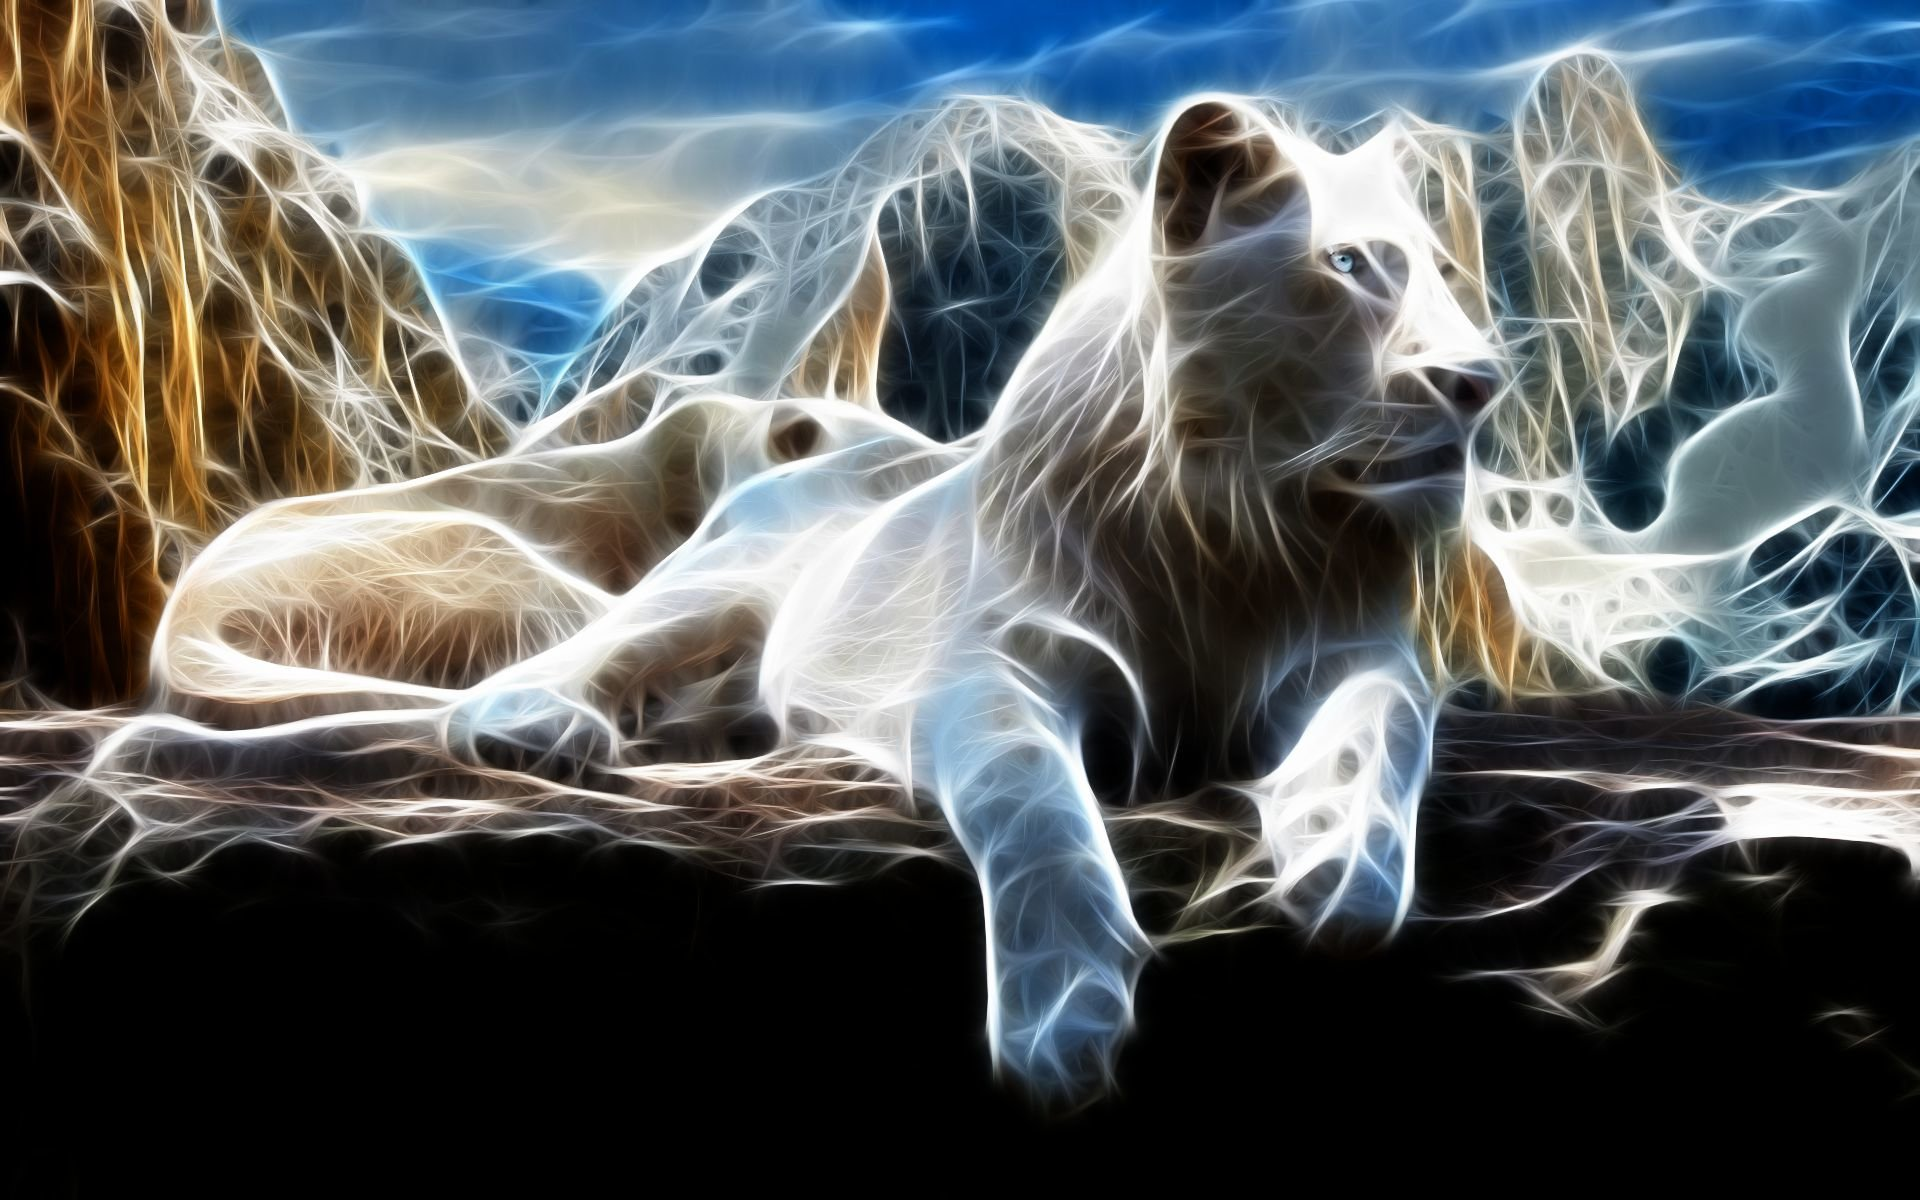 Free Download White Lion Wallpaper ID237720 Hd 1920x1200 For Desktop